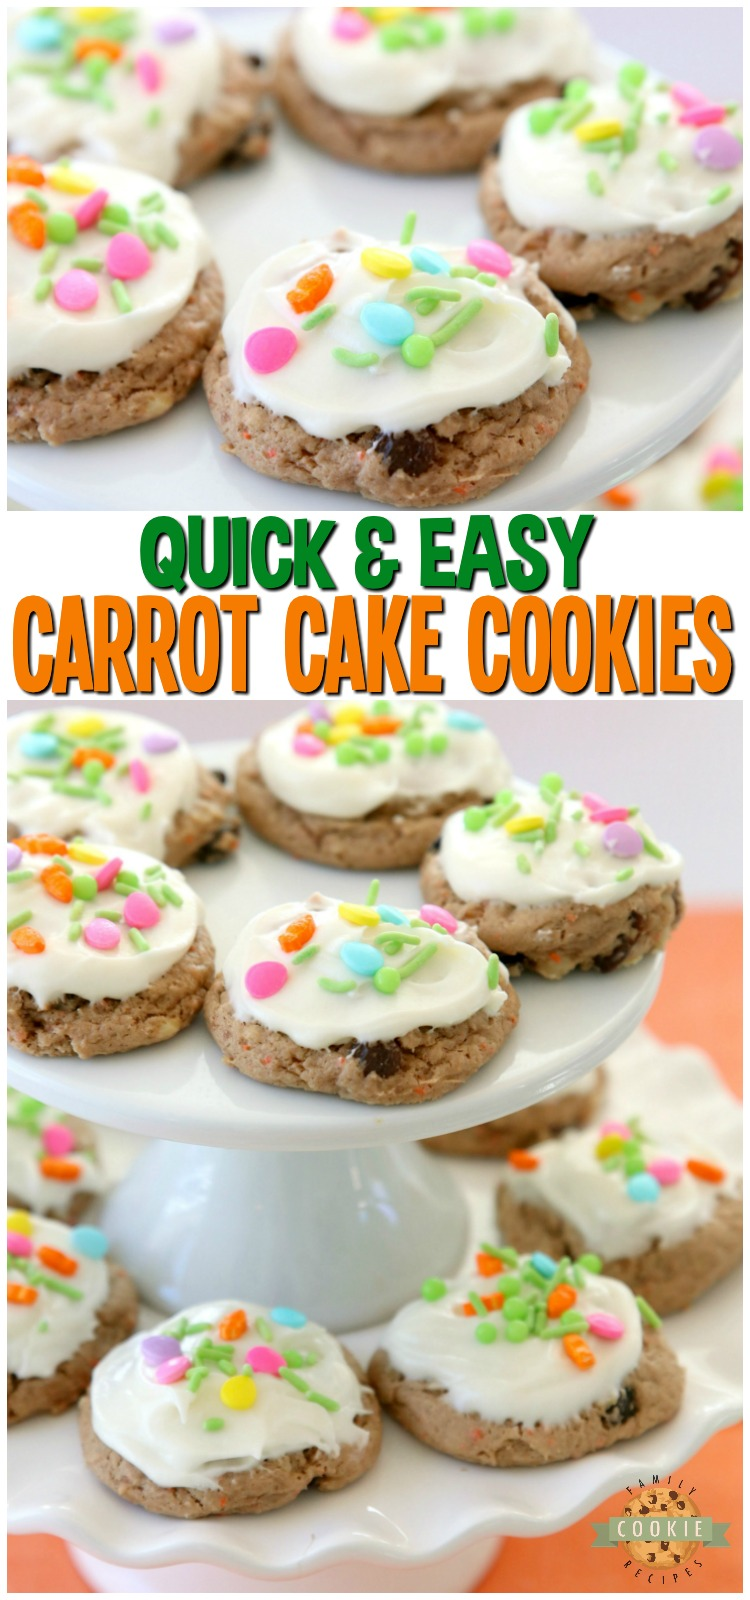 Carrot Cake Cookies are soft and chewy, flavorful carrot cake cookies made with a cake mix! Topped with a creamy cheesecake frosting, these carrot cake cookies are perfect for Easter!  #carrotcake #cookies #cakemix #cookie #Spring #Easter #recipe #dessert from FAMILY COOKIE RECIPES via @familycookierecipes